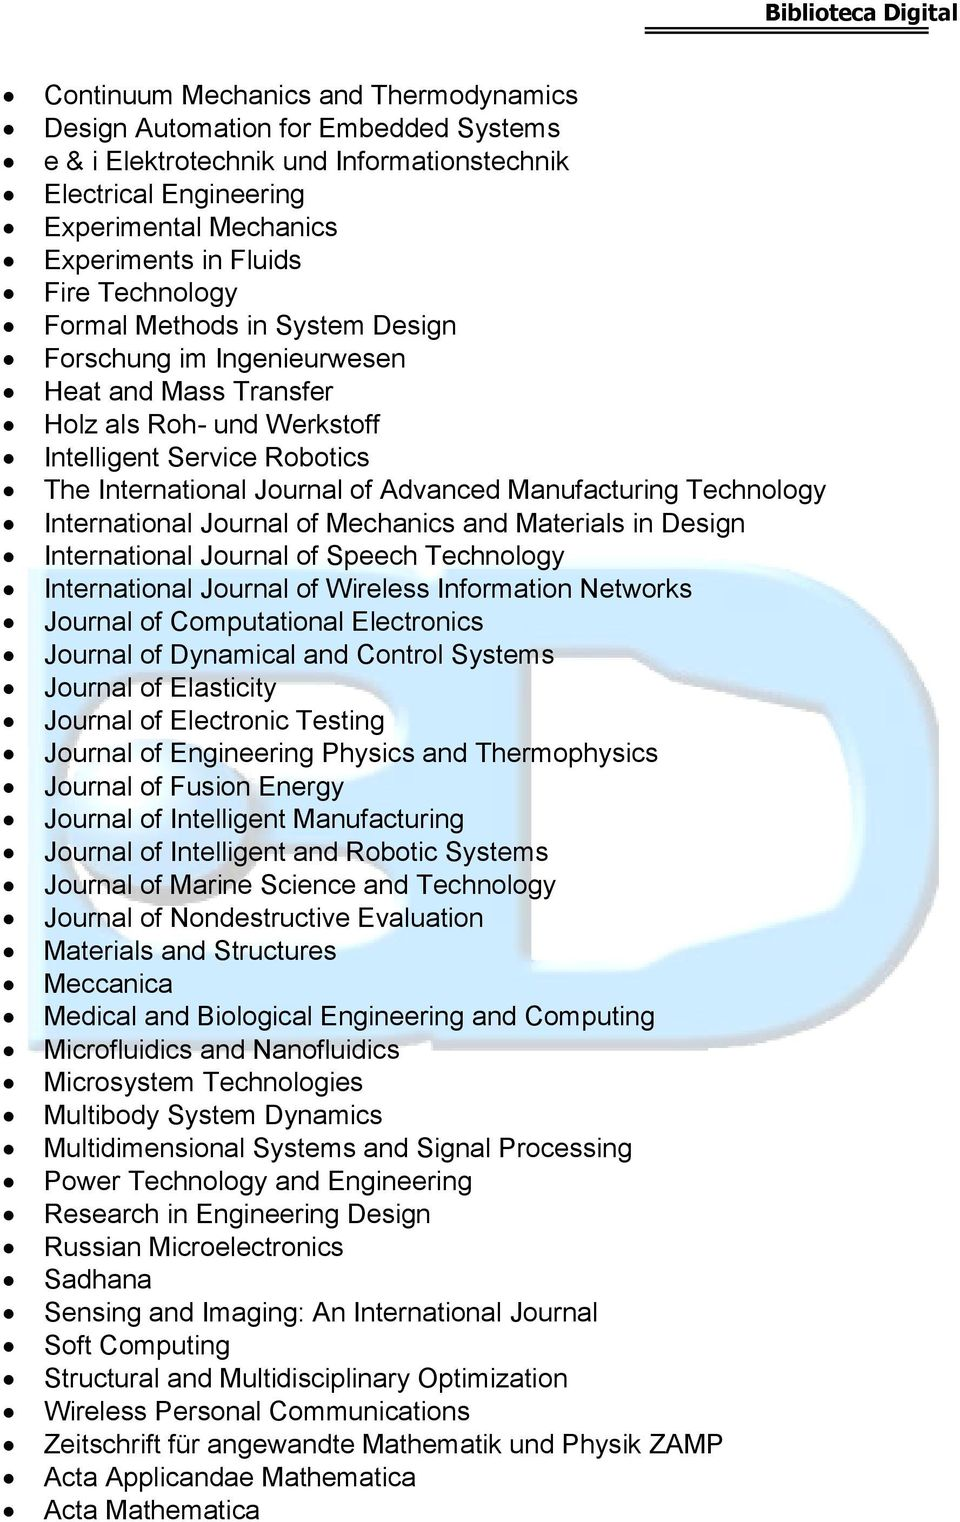 Manufacturing Technology International Journal of Mechanics and Materials in Design International Journal of Speech Technology International Journal of Wireless Information Networks Journal of